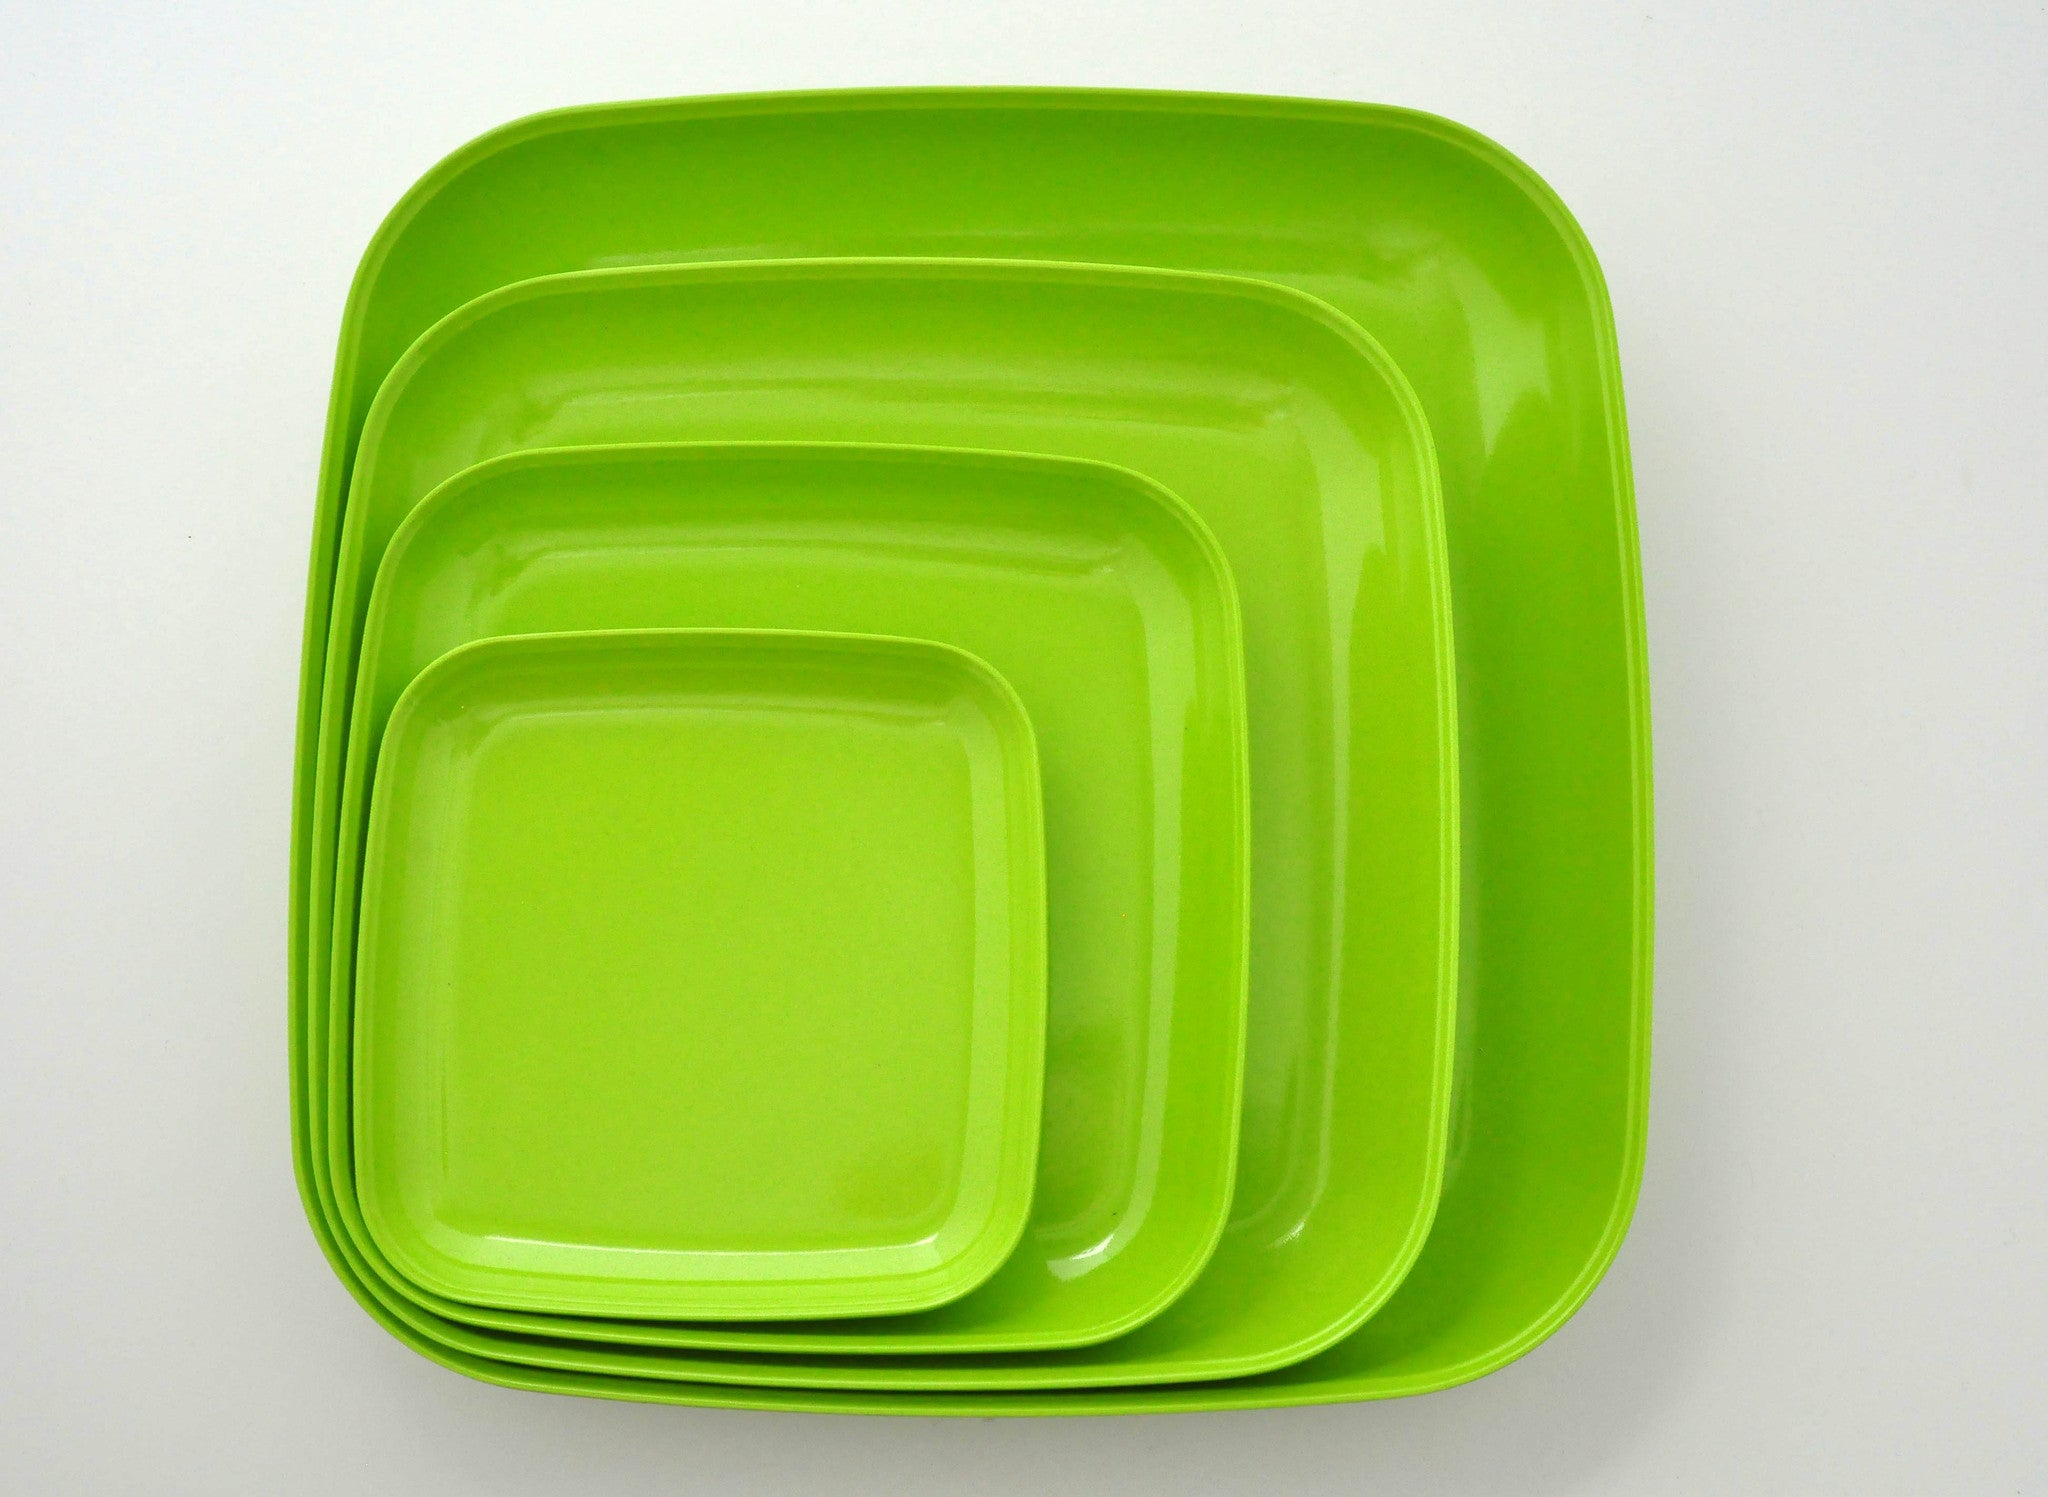 Yumi Nature+ Green Square Plates (Set of 4) & Yumi Nature+ Green Square Plates (Set of 4) - PaperlessKitchen.com